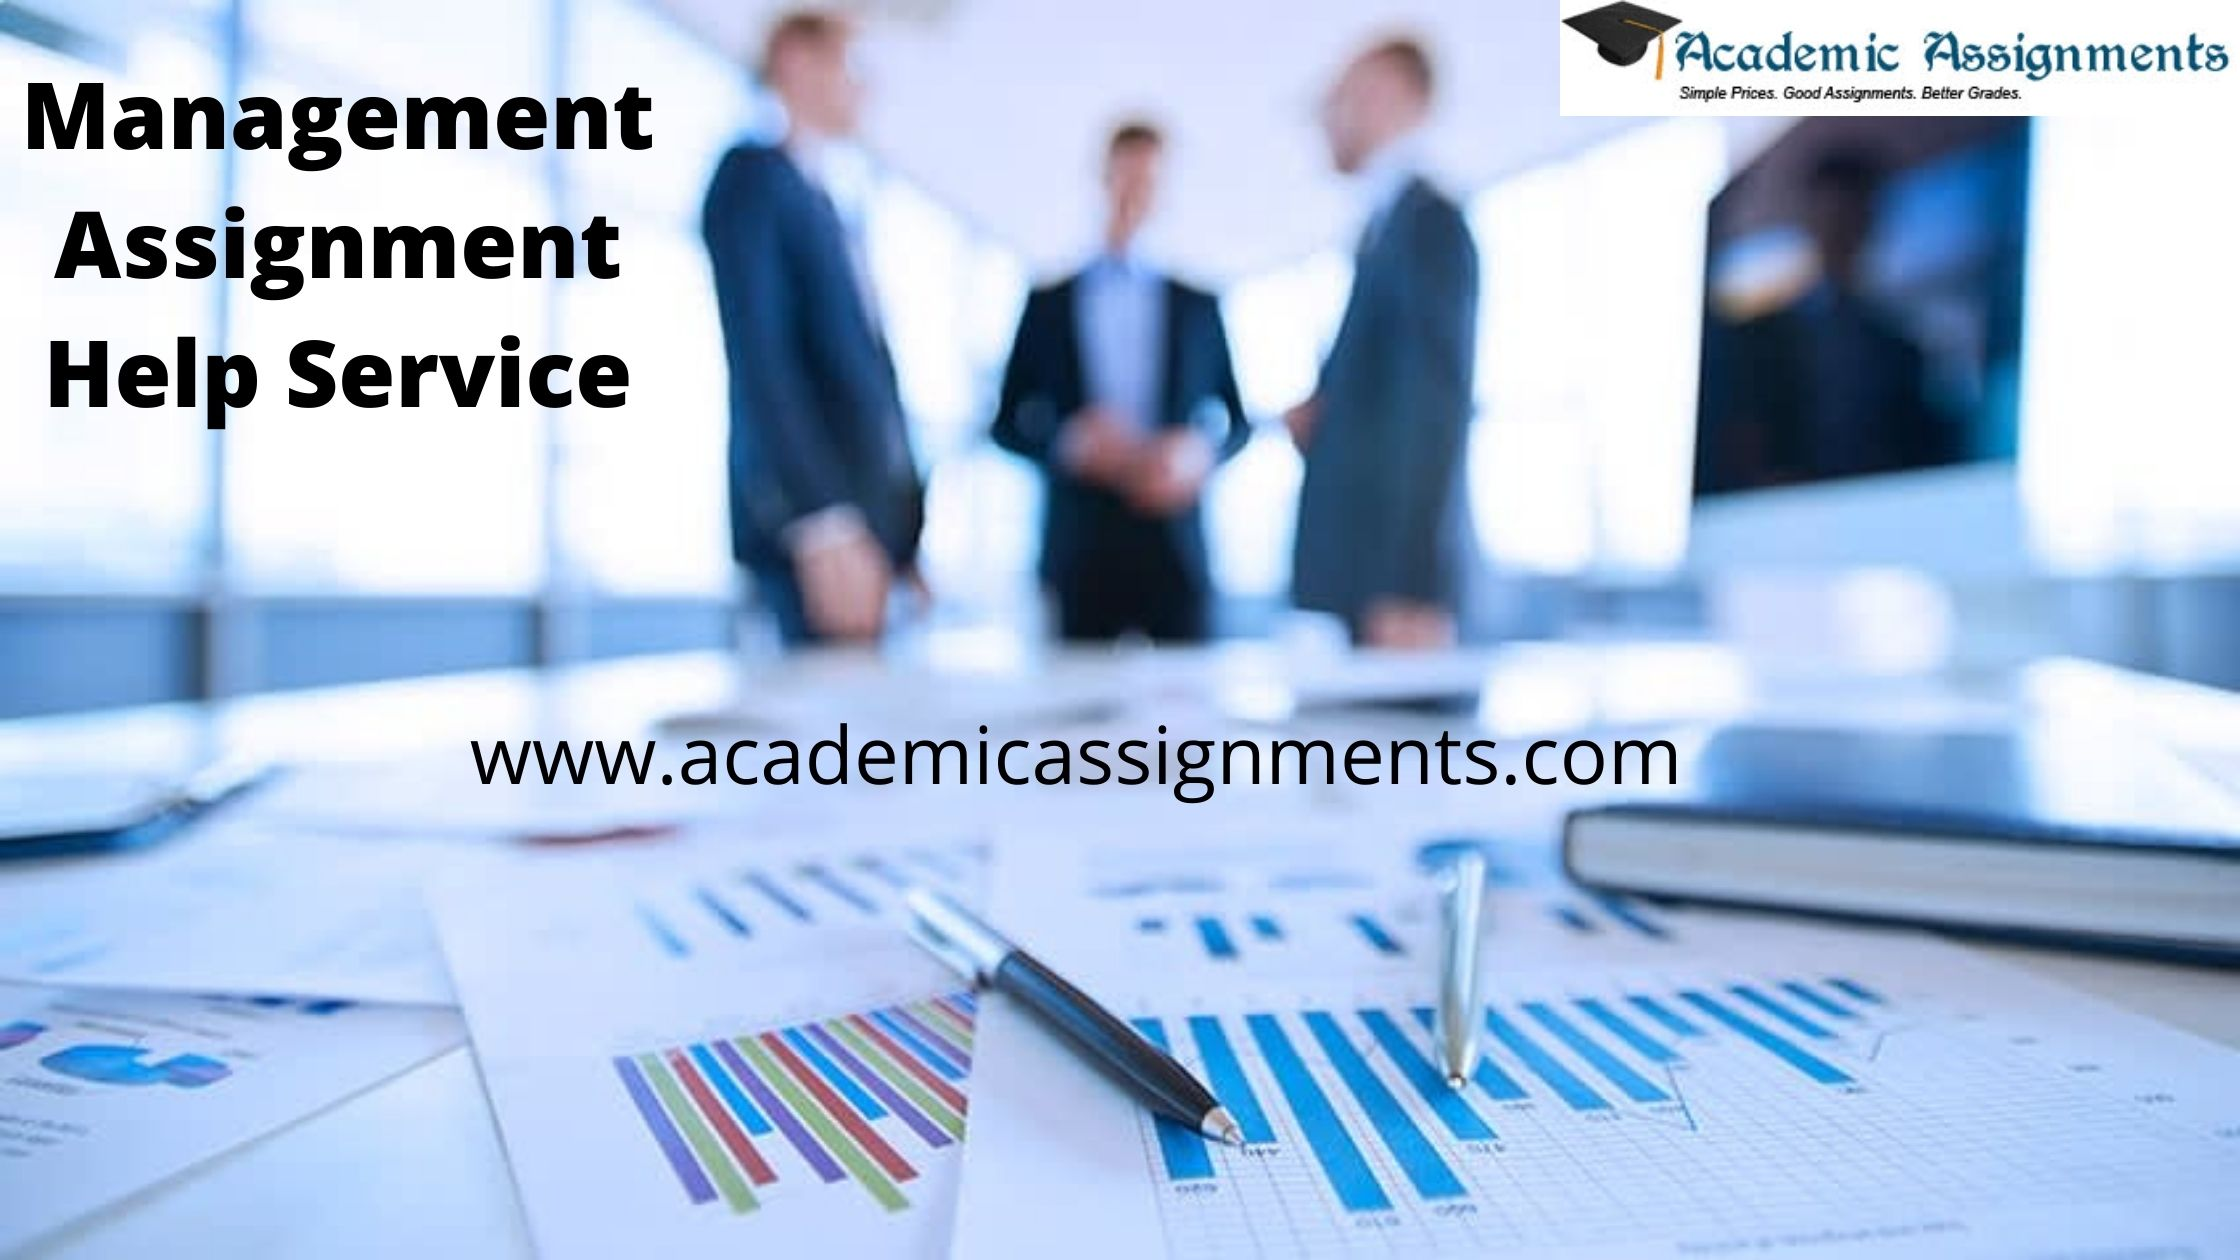 Management Assignment Help Service